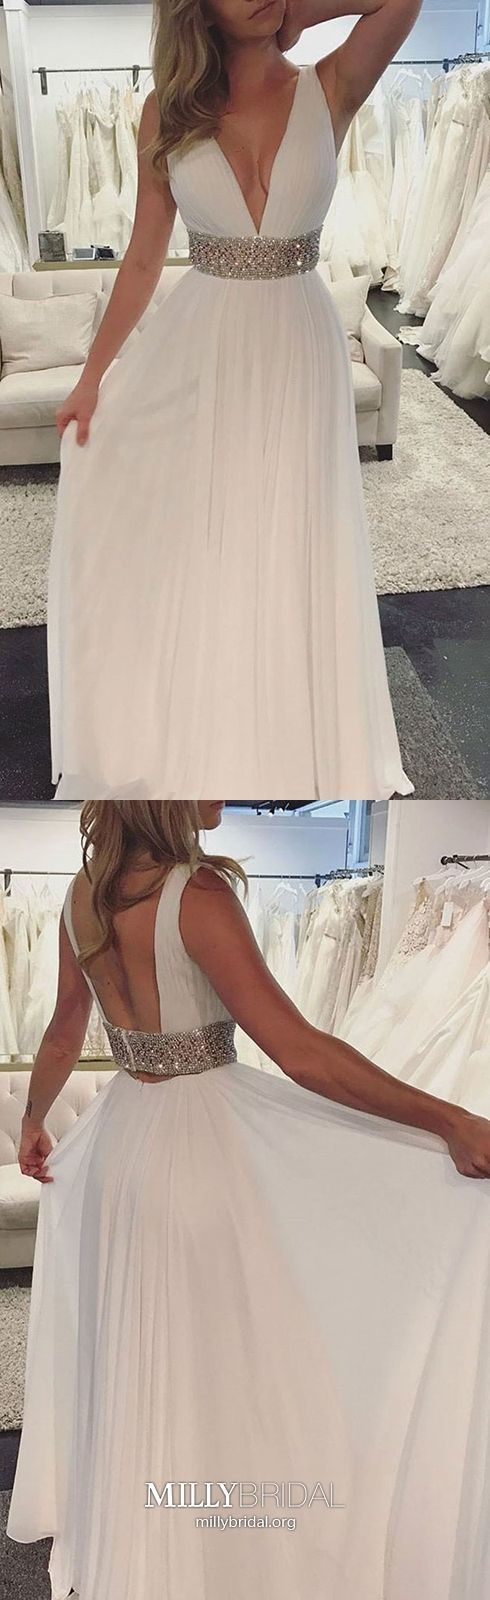 White Prom Dresses Long,Sexy Prom Dresses Open Back,A-line Prom Dresses